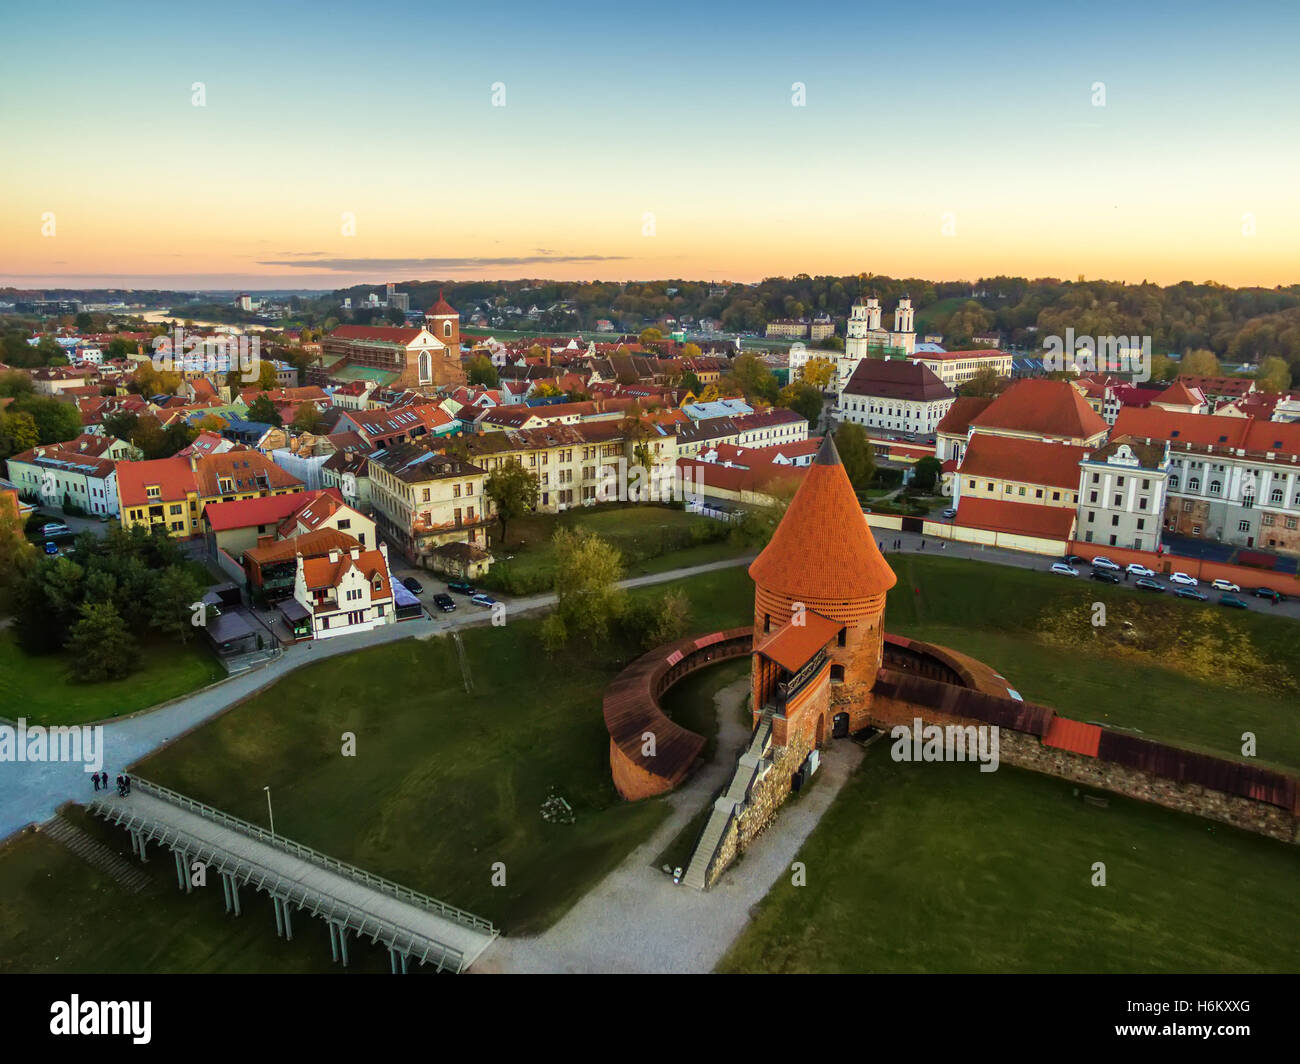 Kaunas, Lithuania: aerial top view of old town and castle - Stock Image